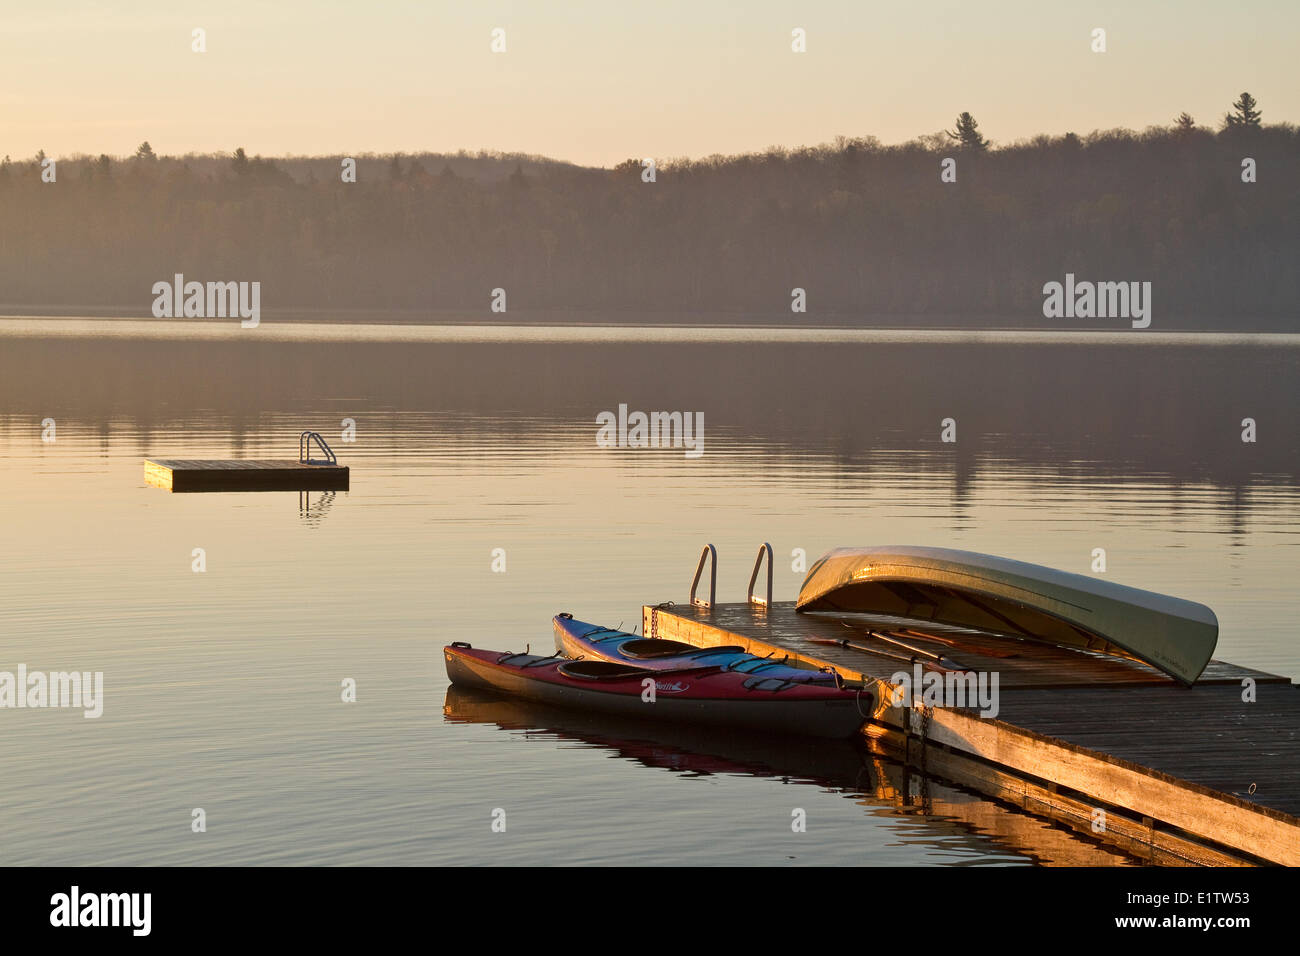 Canoe and kayaks on dock, Source Lake, Algonquin Park, Ontario, Canada. - Stock Image